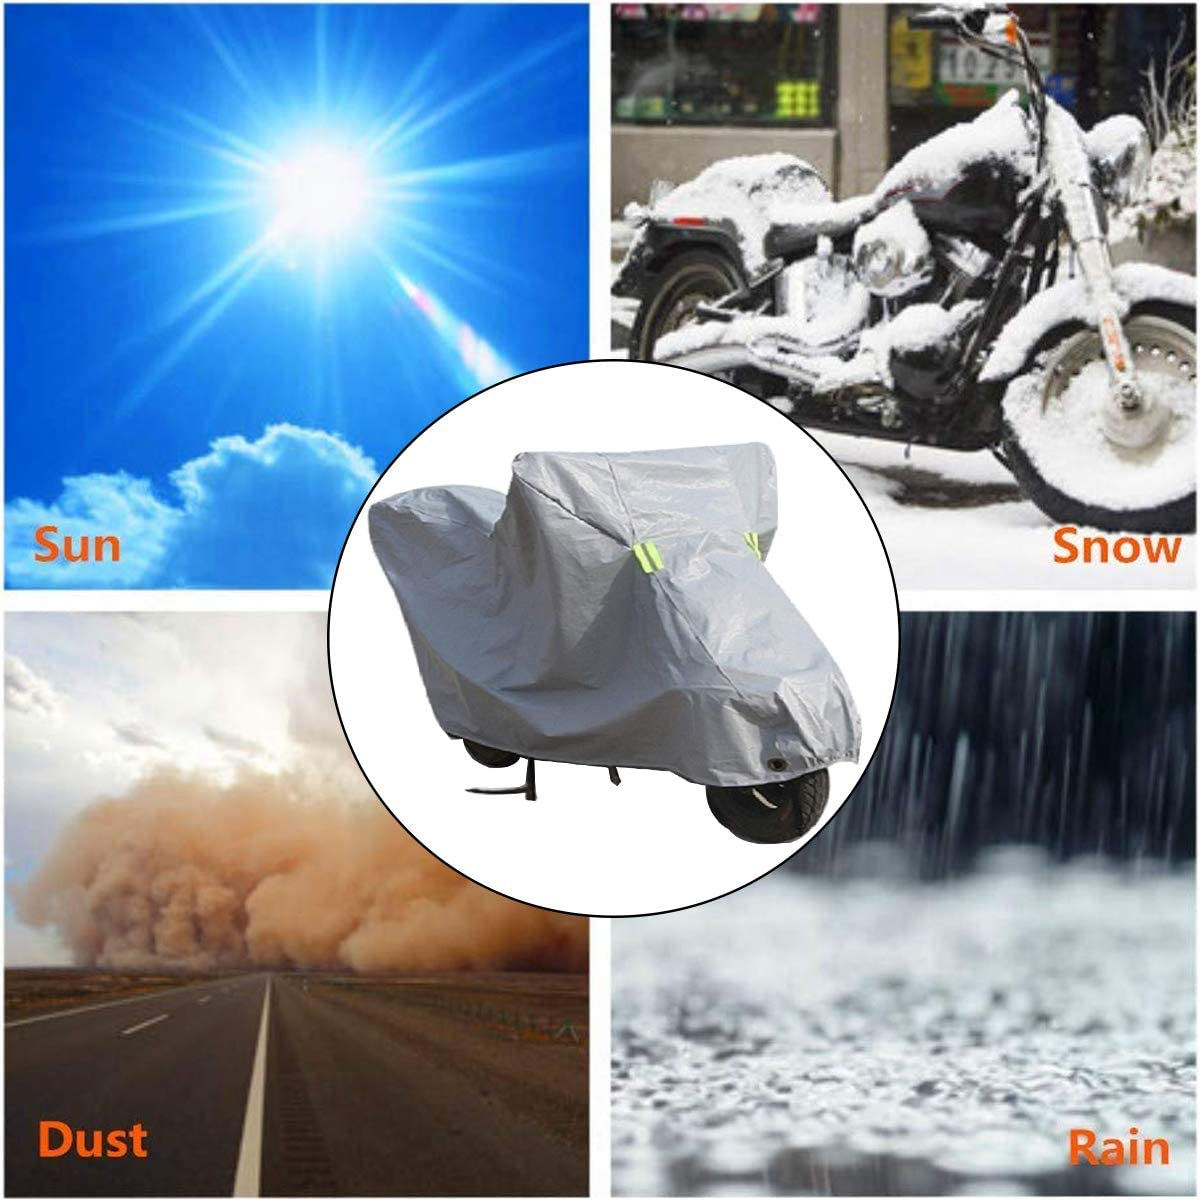 All Weather Outdoor Protection Protect Against Dust Silver Ecloud Shop Motorcycle Cover Waterproof Outdoor Storage Bag Debris Rain and Weather-L